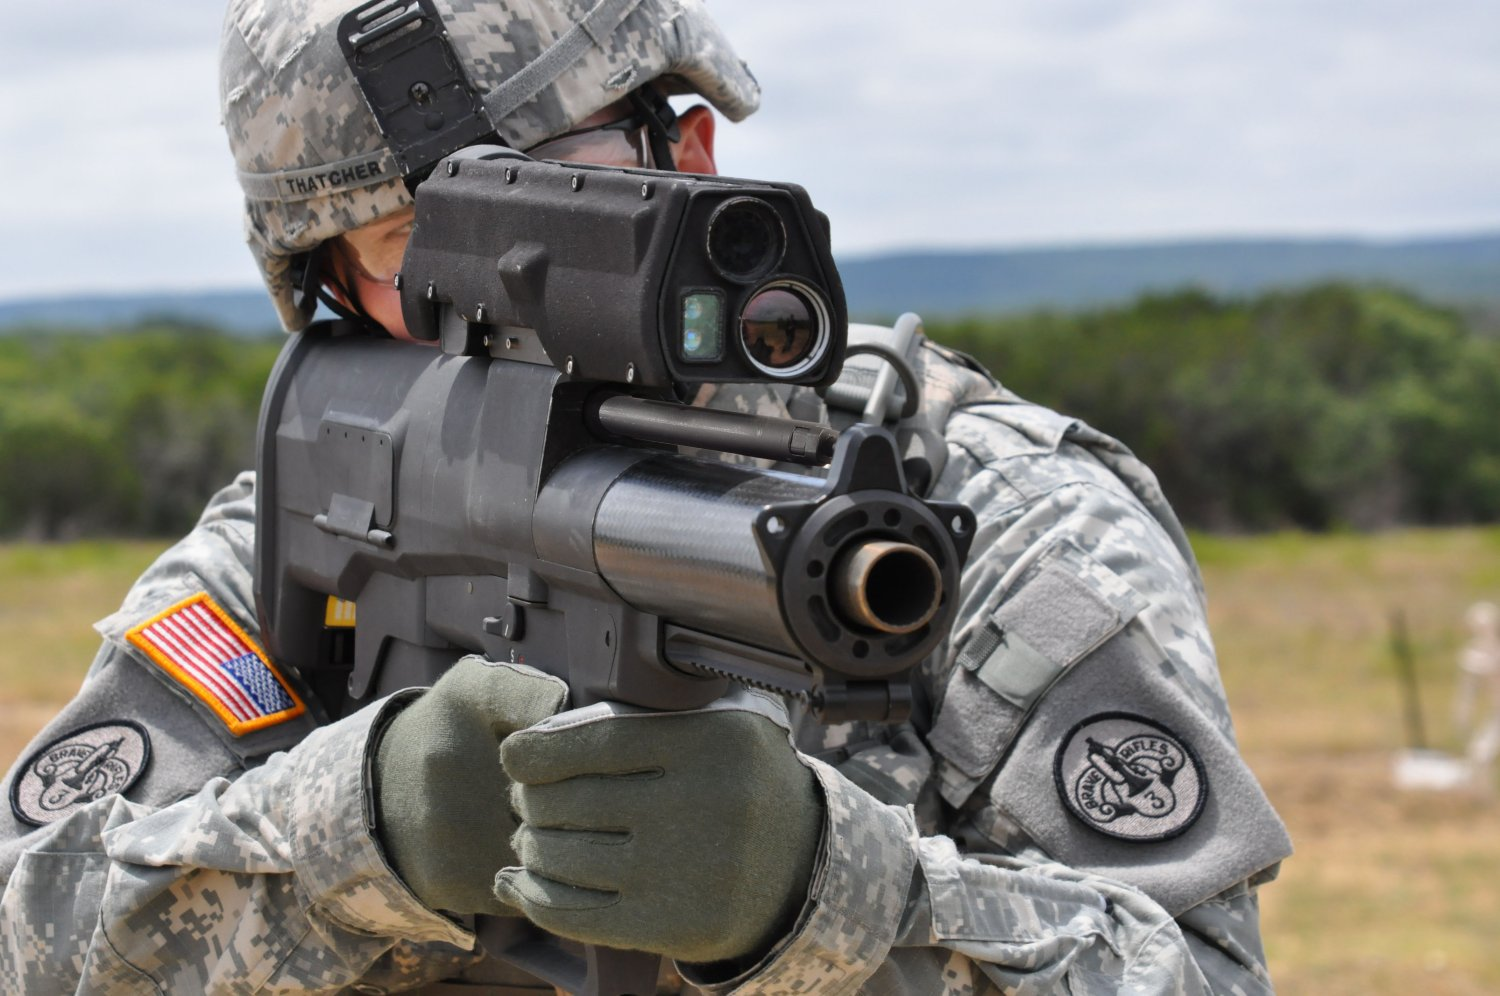 ATK XM25 25mm Auto Grenade Launcher PEO Soldier 1 small <!  :en  >ATK XM25 Game Changer Semi Auto 25mm Airburst Grenade Launcher/Individual Airburst Weapon System (IAWS) Goes to Combat: DR Provides the Cool Skinny on this Potentially Revolutionary Infantry Weapon System.<!  :  >